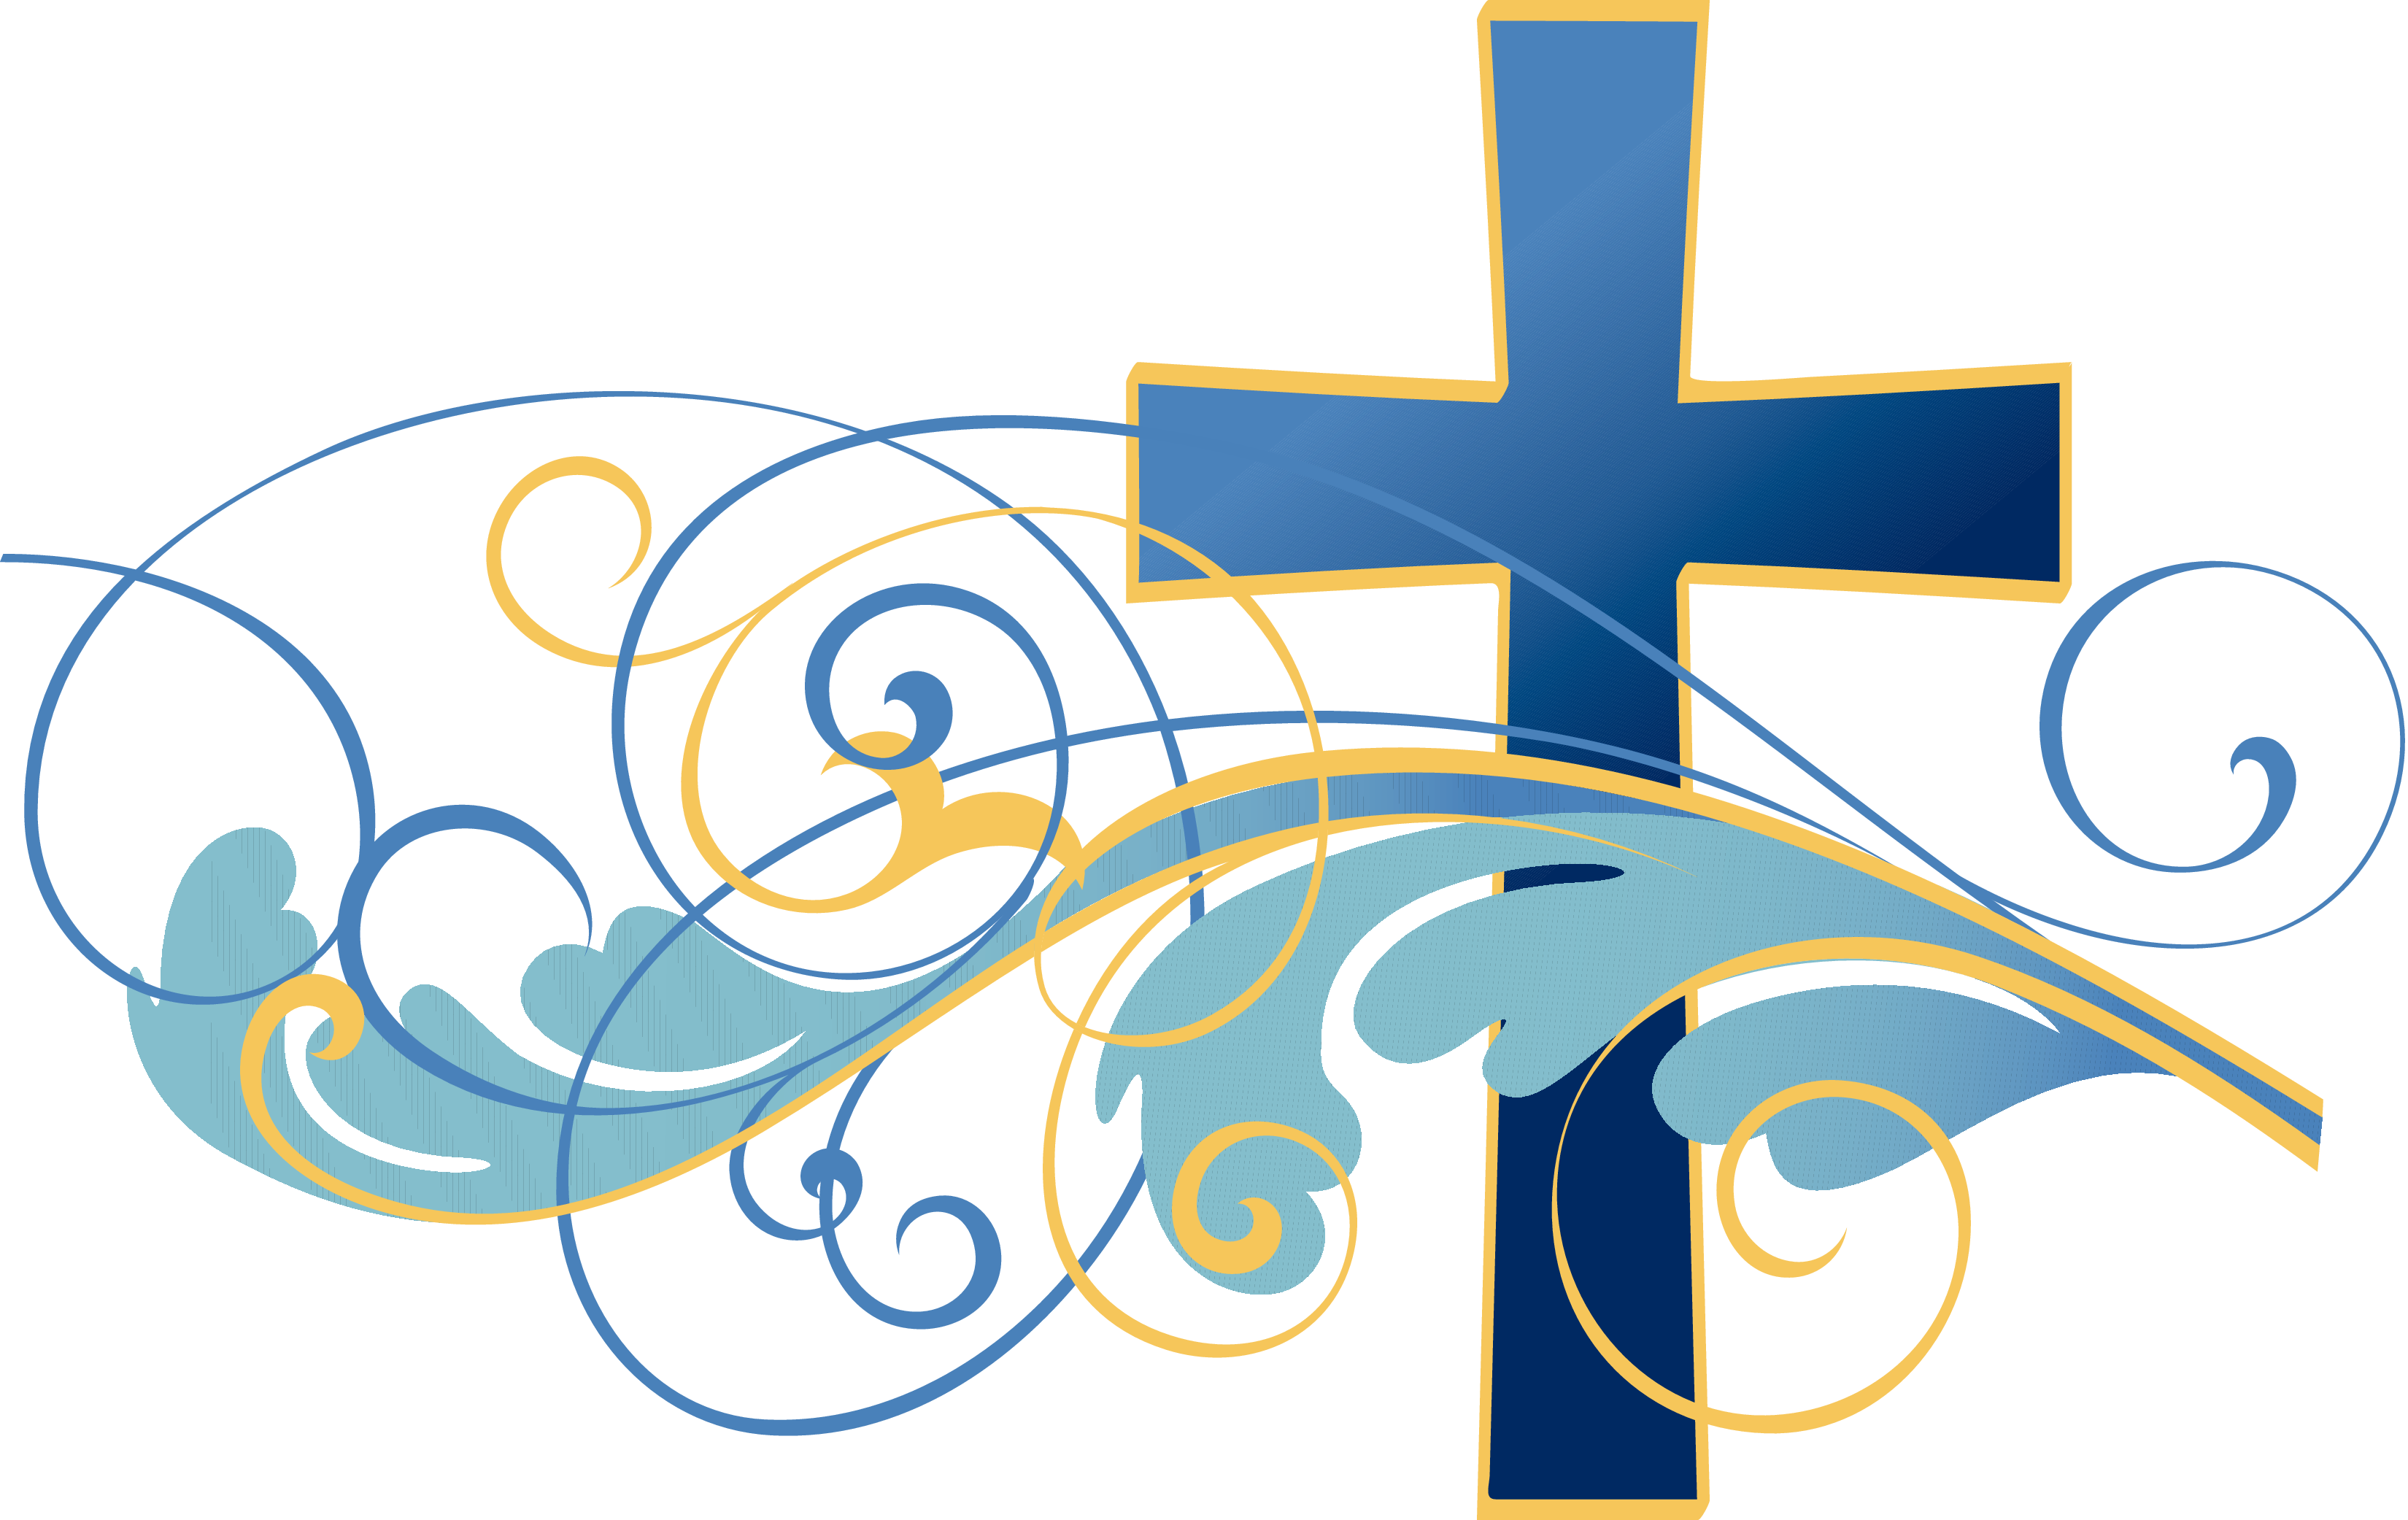 Simple Christian Cross Clipart Clipart P-Simple Christian Cross Clipart Clipart Panda Free Clipart Images-17